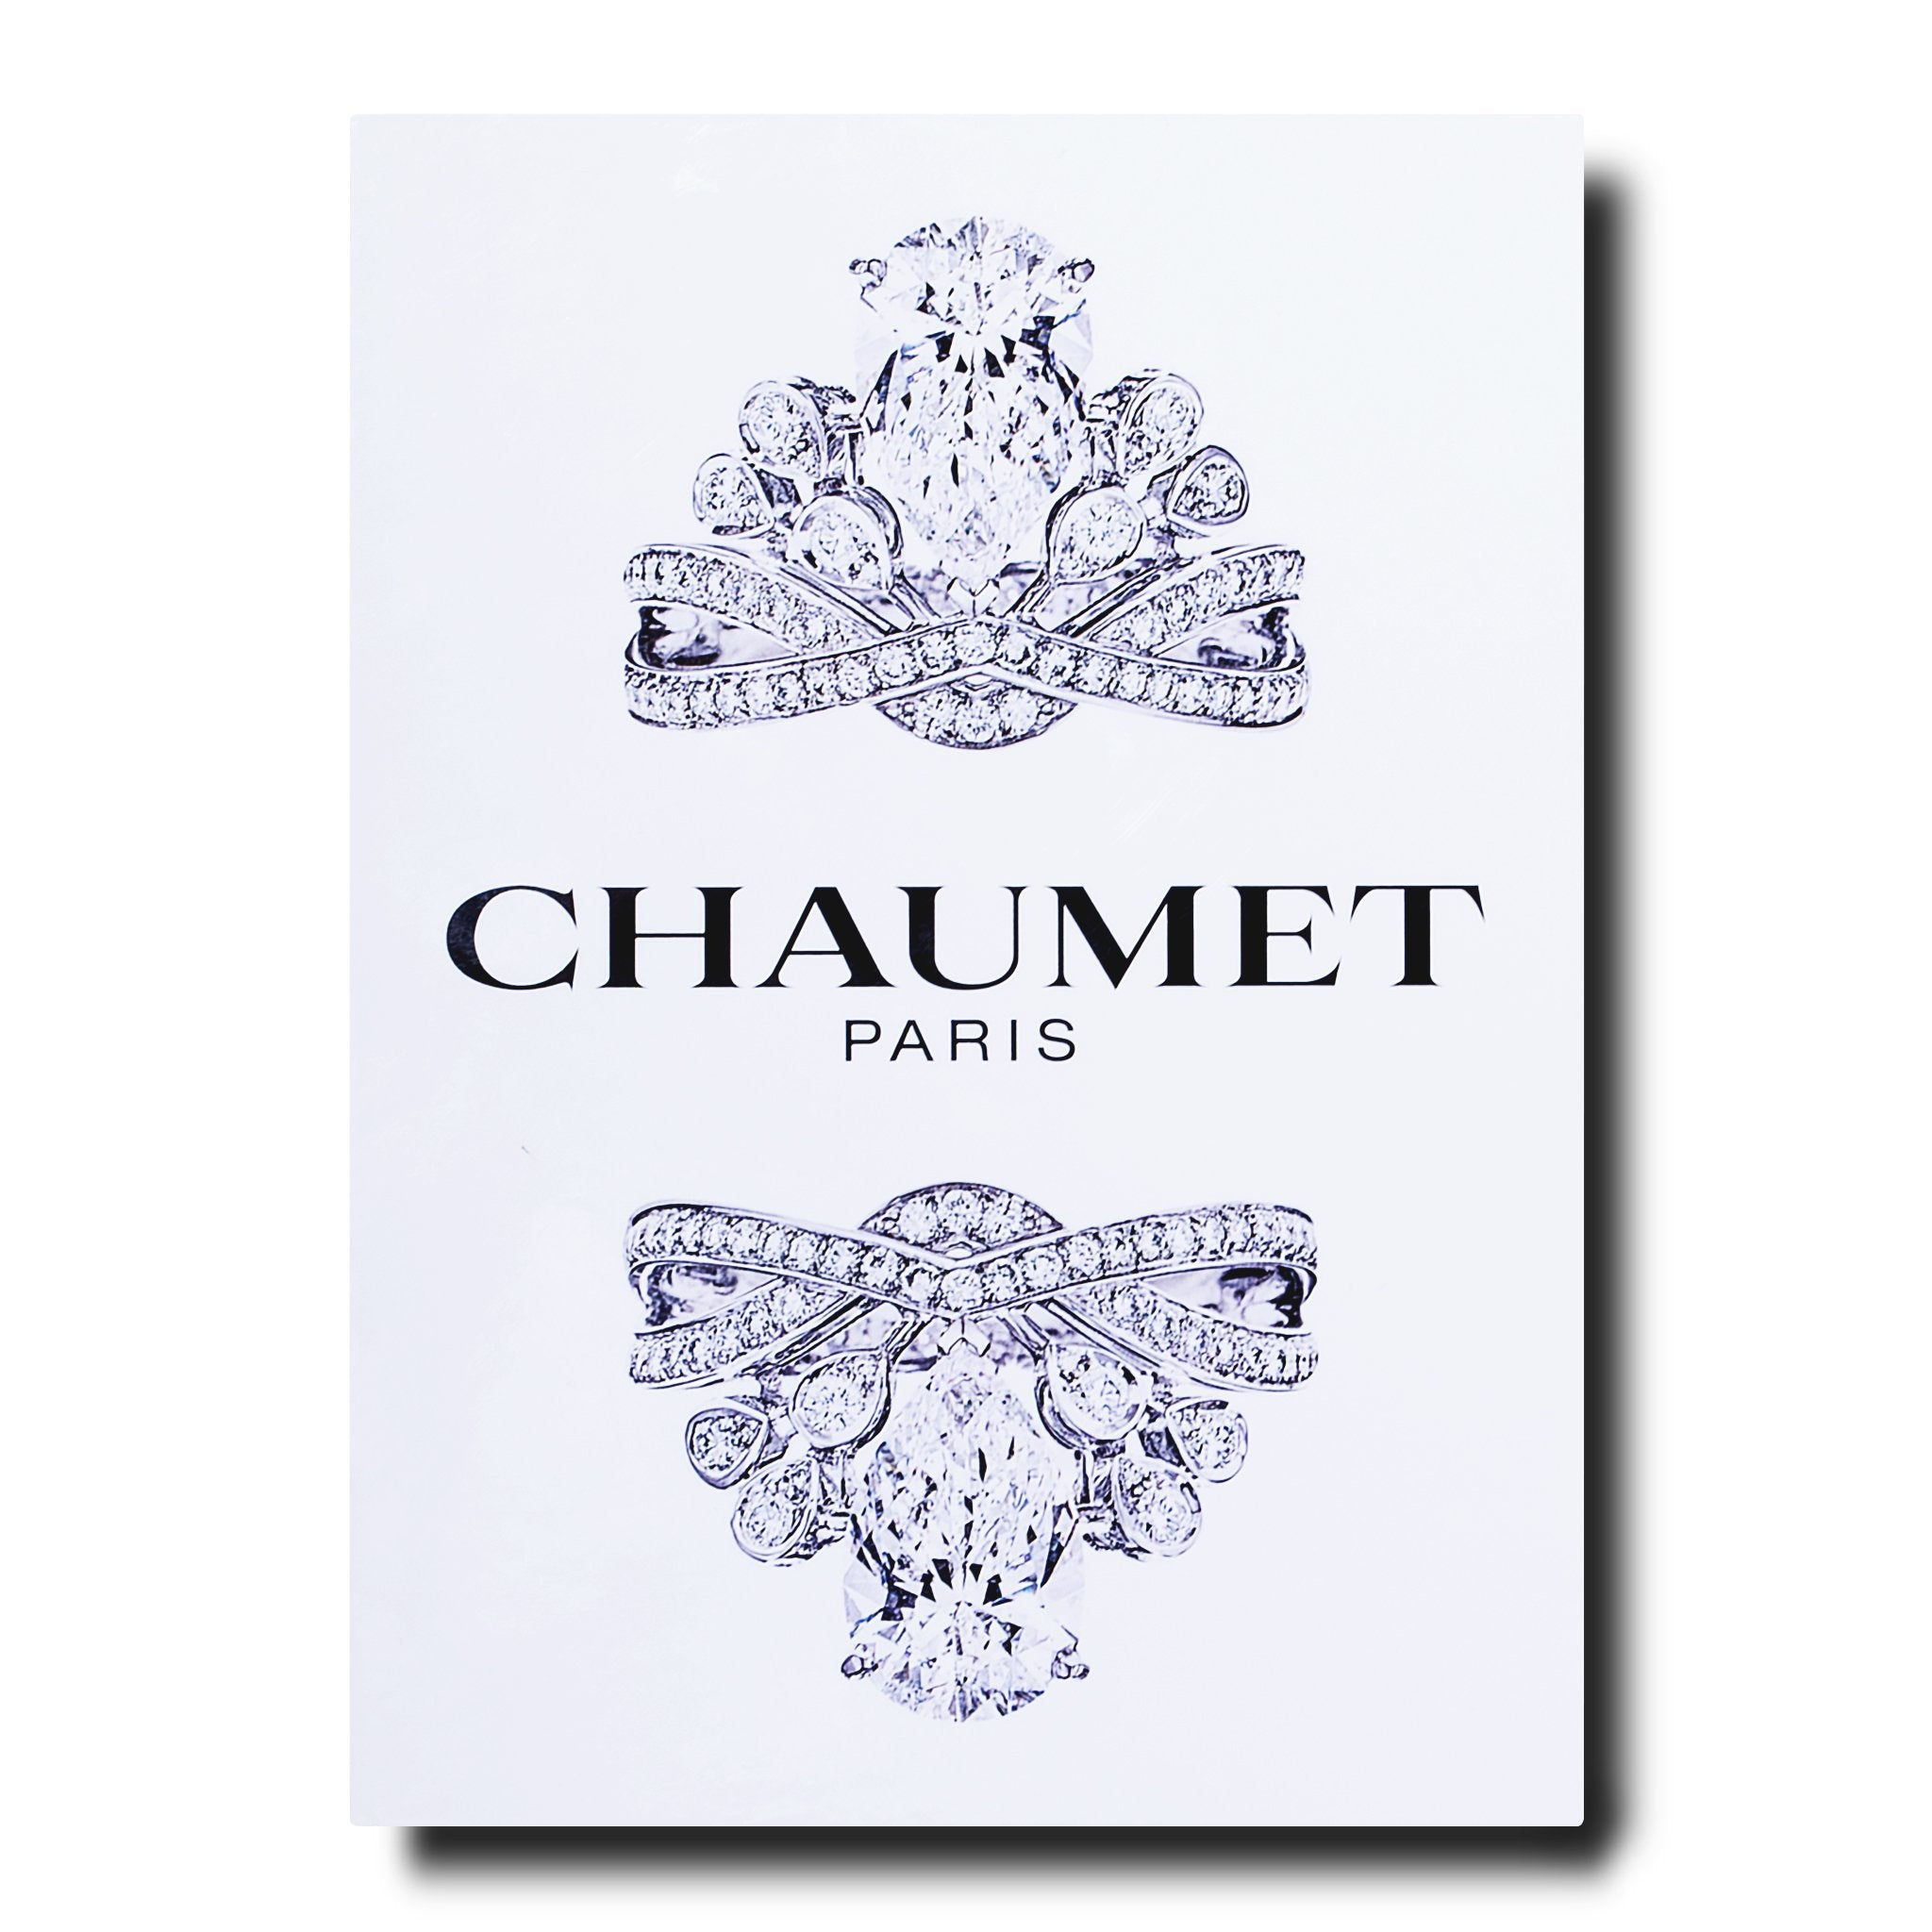 Chaumet 3-Volume Slipcase Set